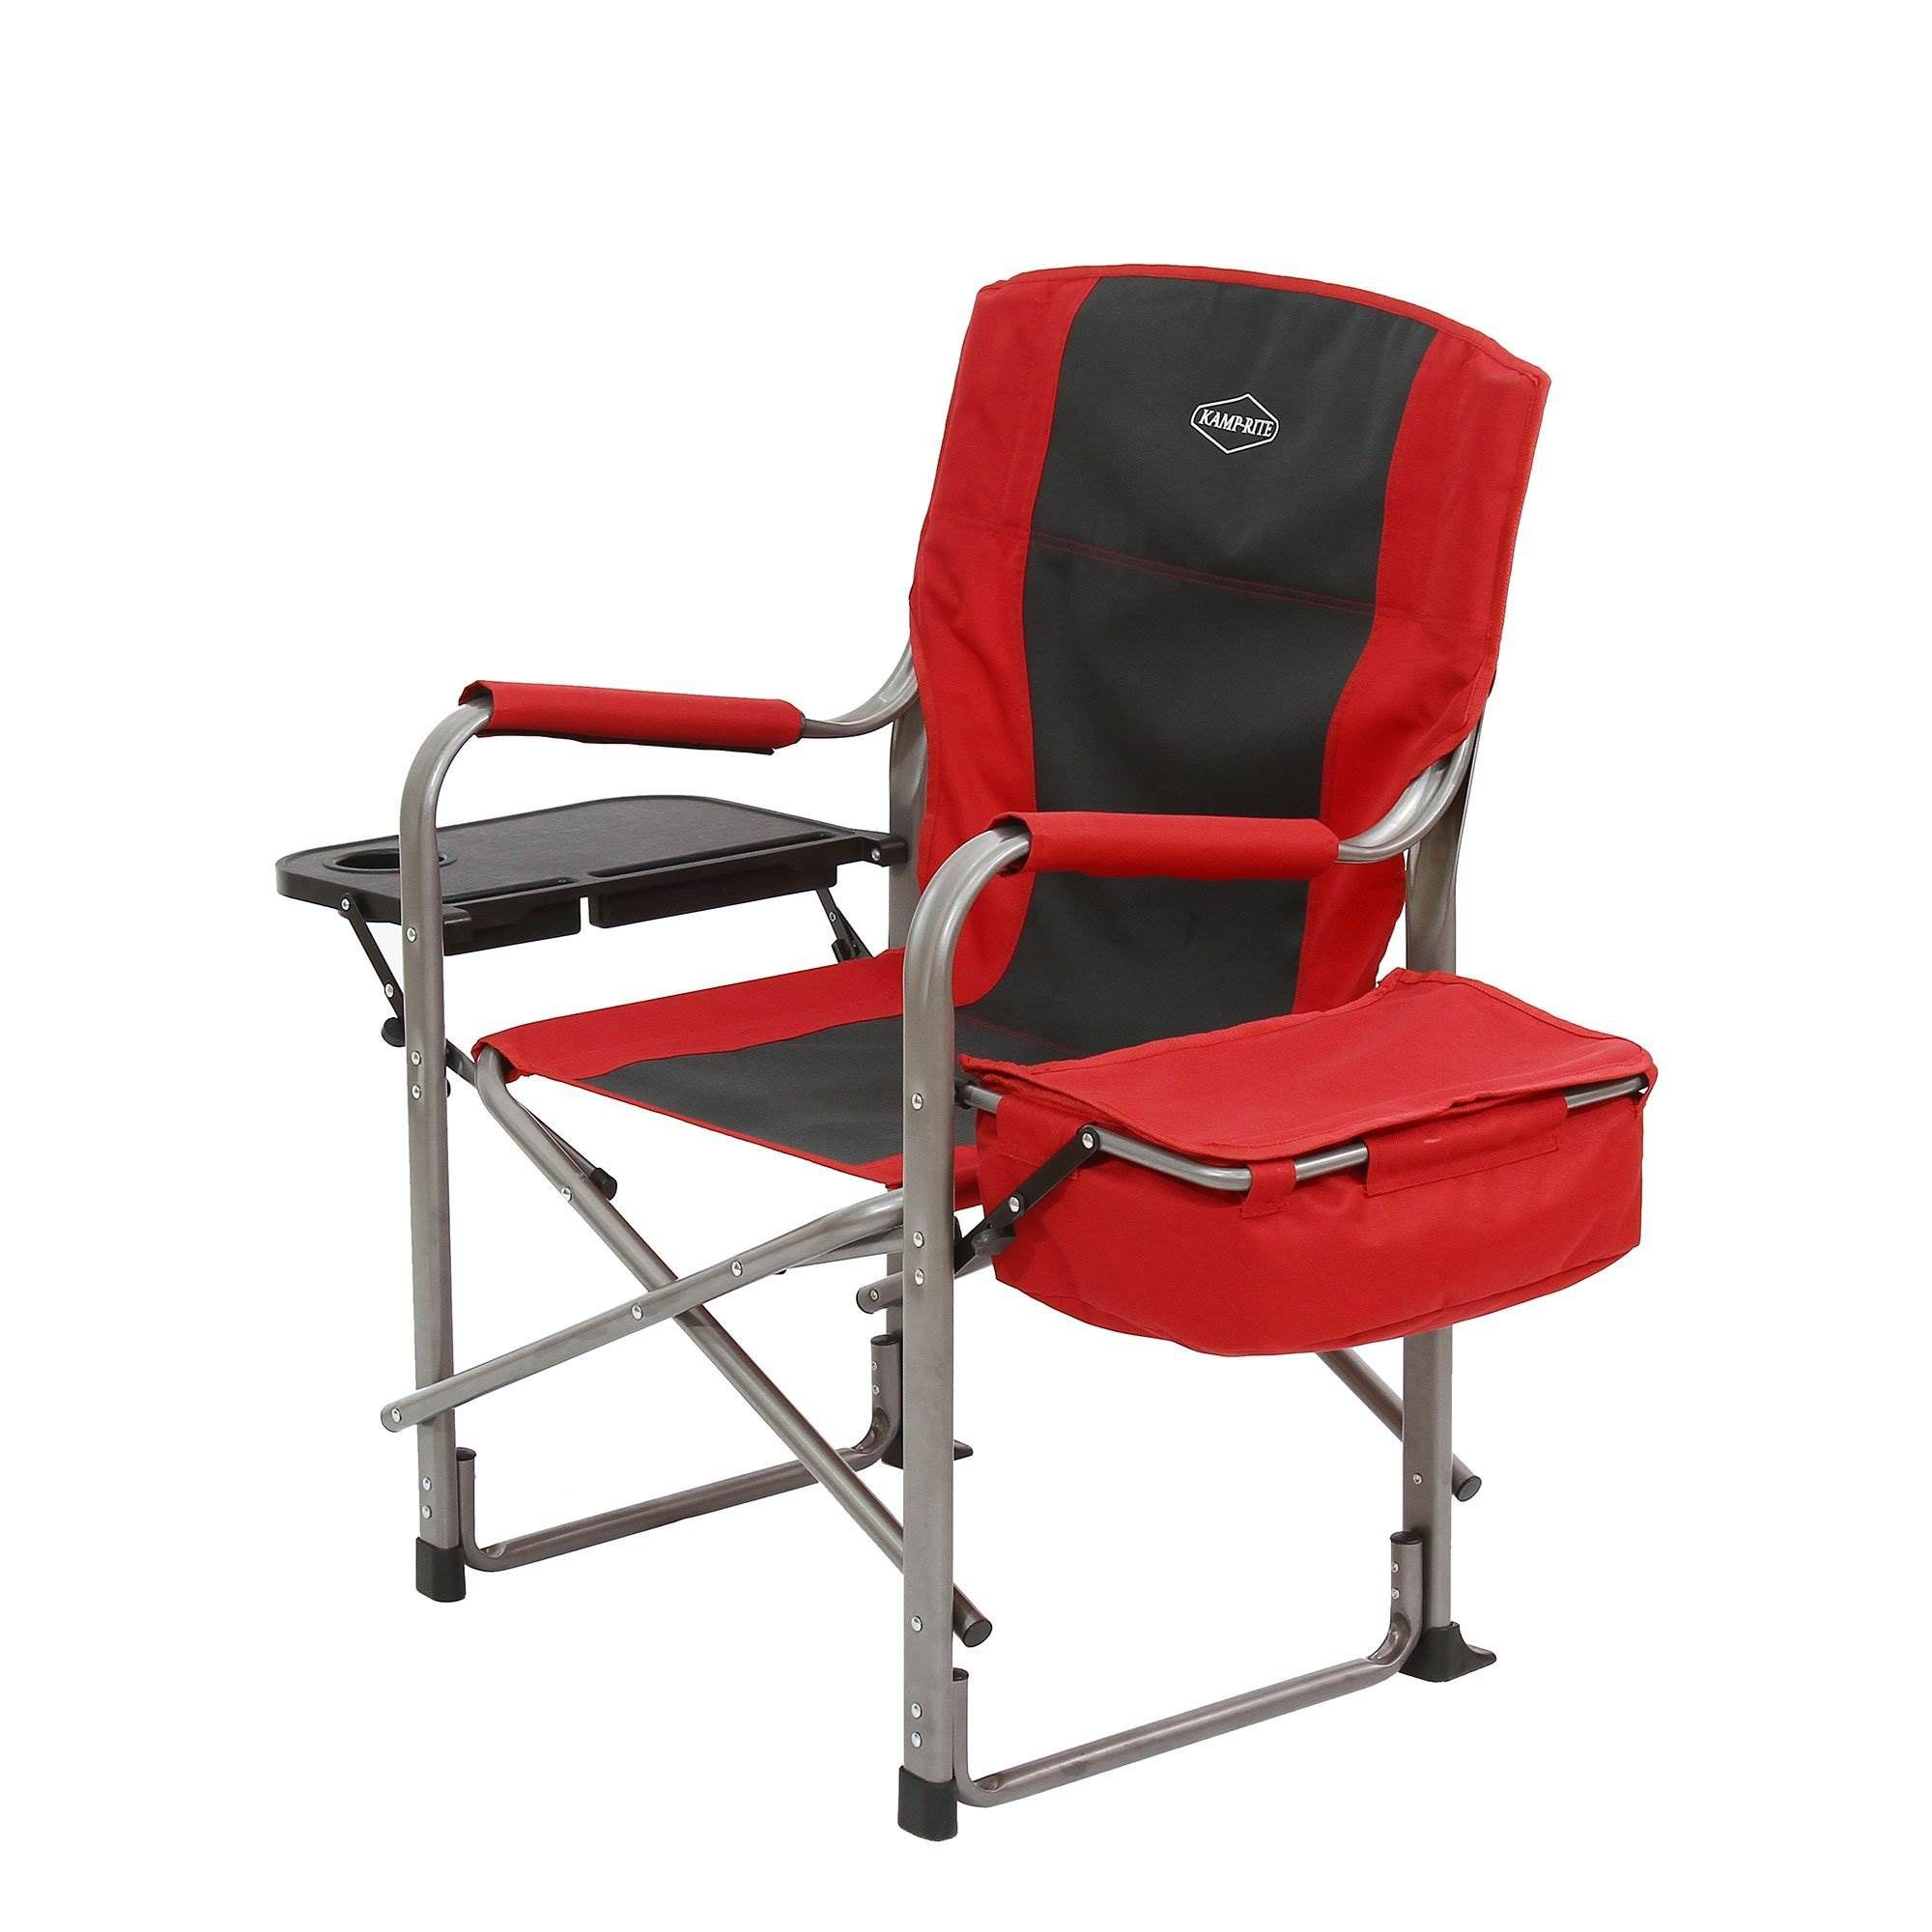 KampRite Outdoor Camp Folding Director's Chair with Side